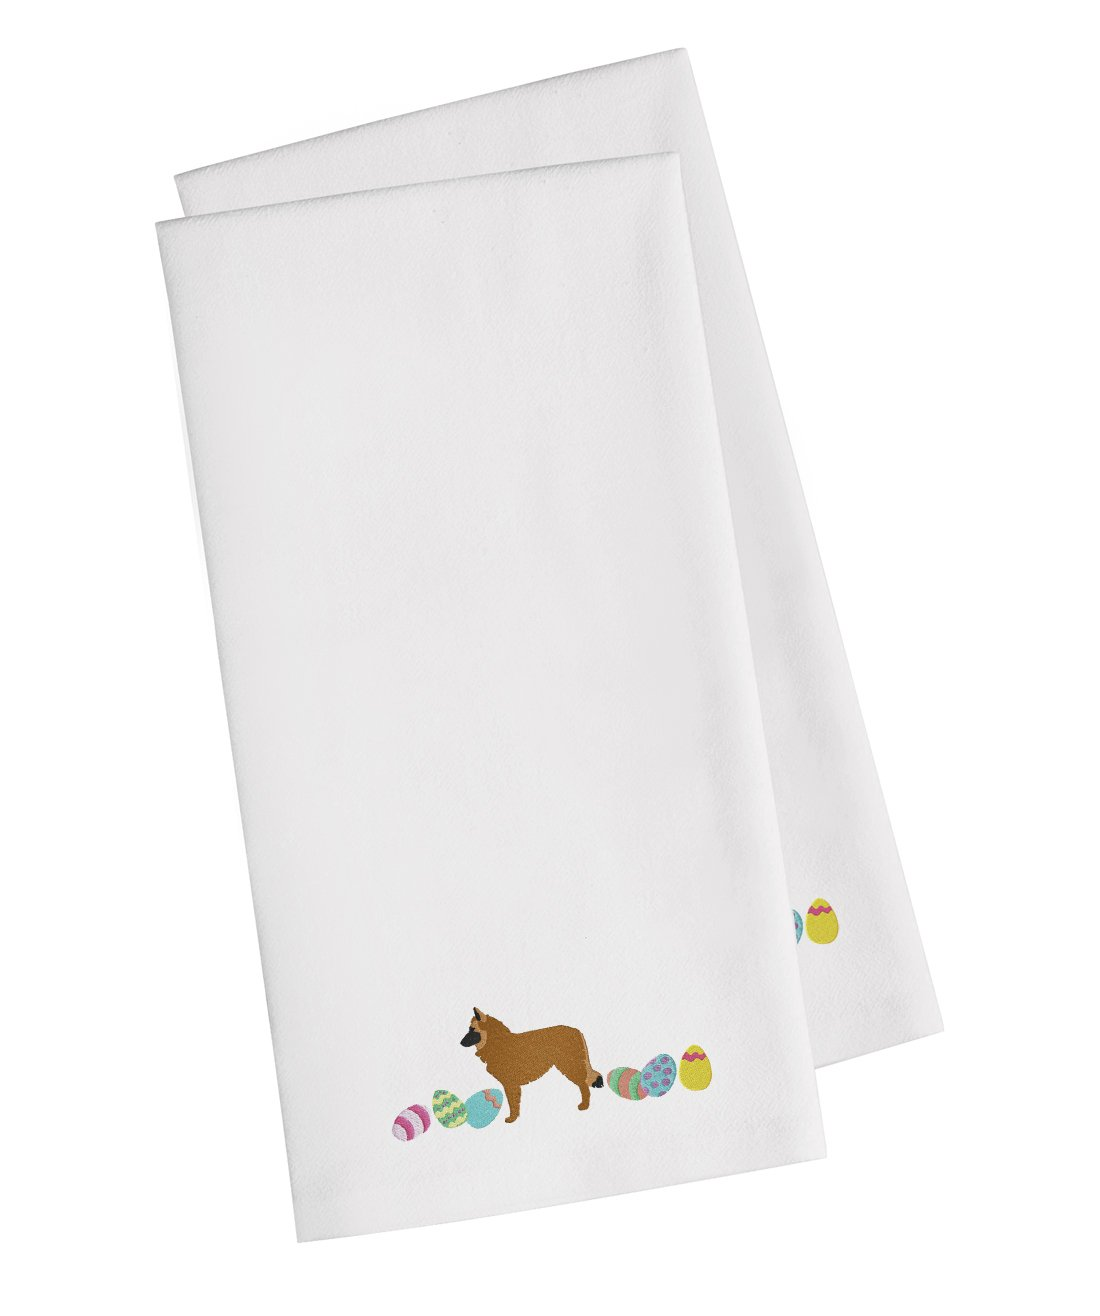 Buy this Belgian Sheepdog Easter White Embroidered Kitchen Towel Set of 2 CK1607WHTWE